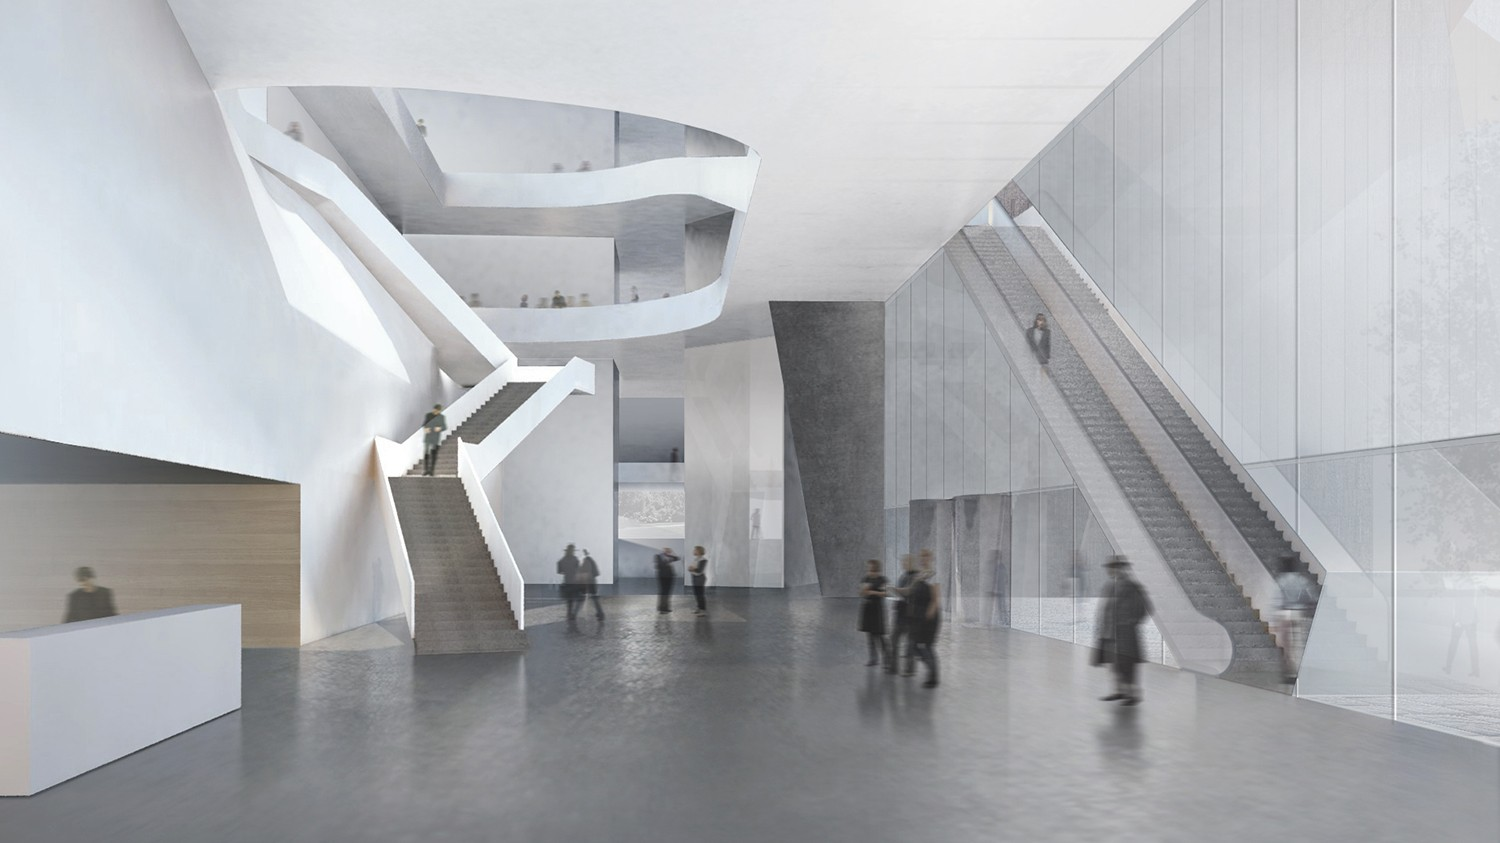 https://stevenholl.sfo2.digitaloceanspaces.com/uploads/projects/project-images/StevenHollArchitects_NCCA_lobby_WH.jpg